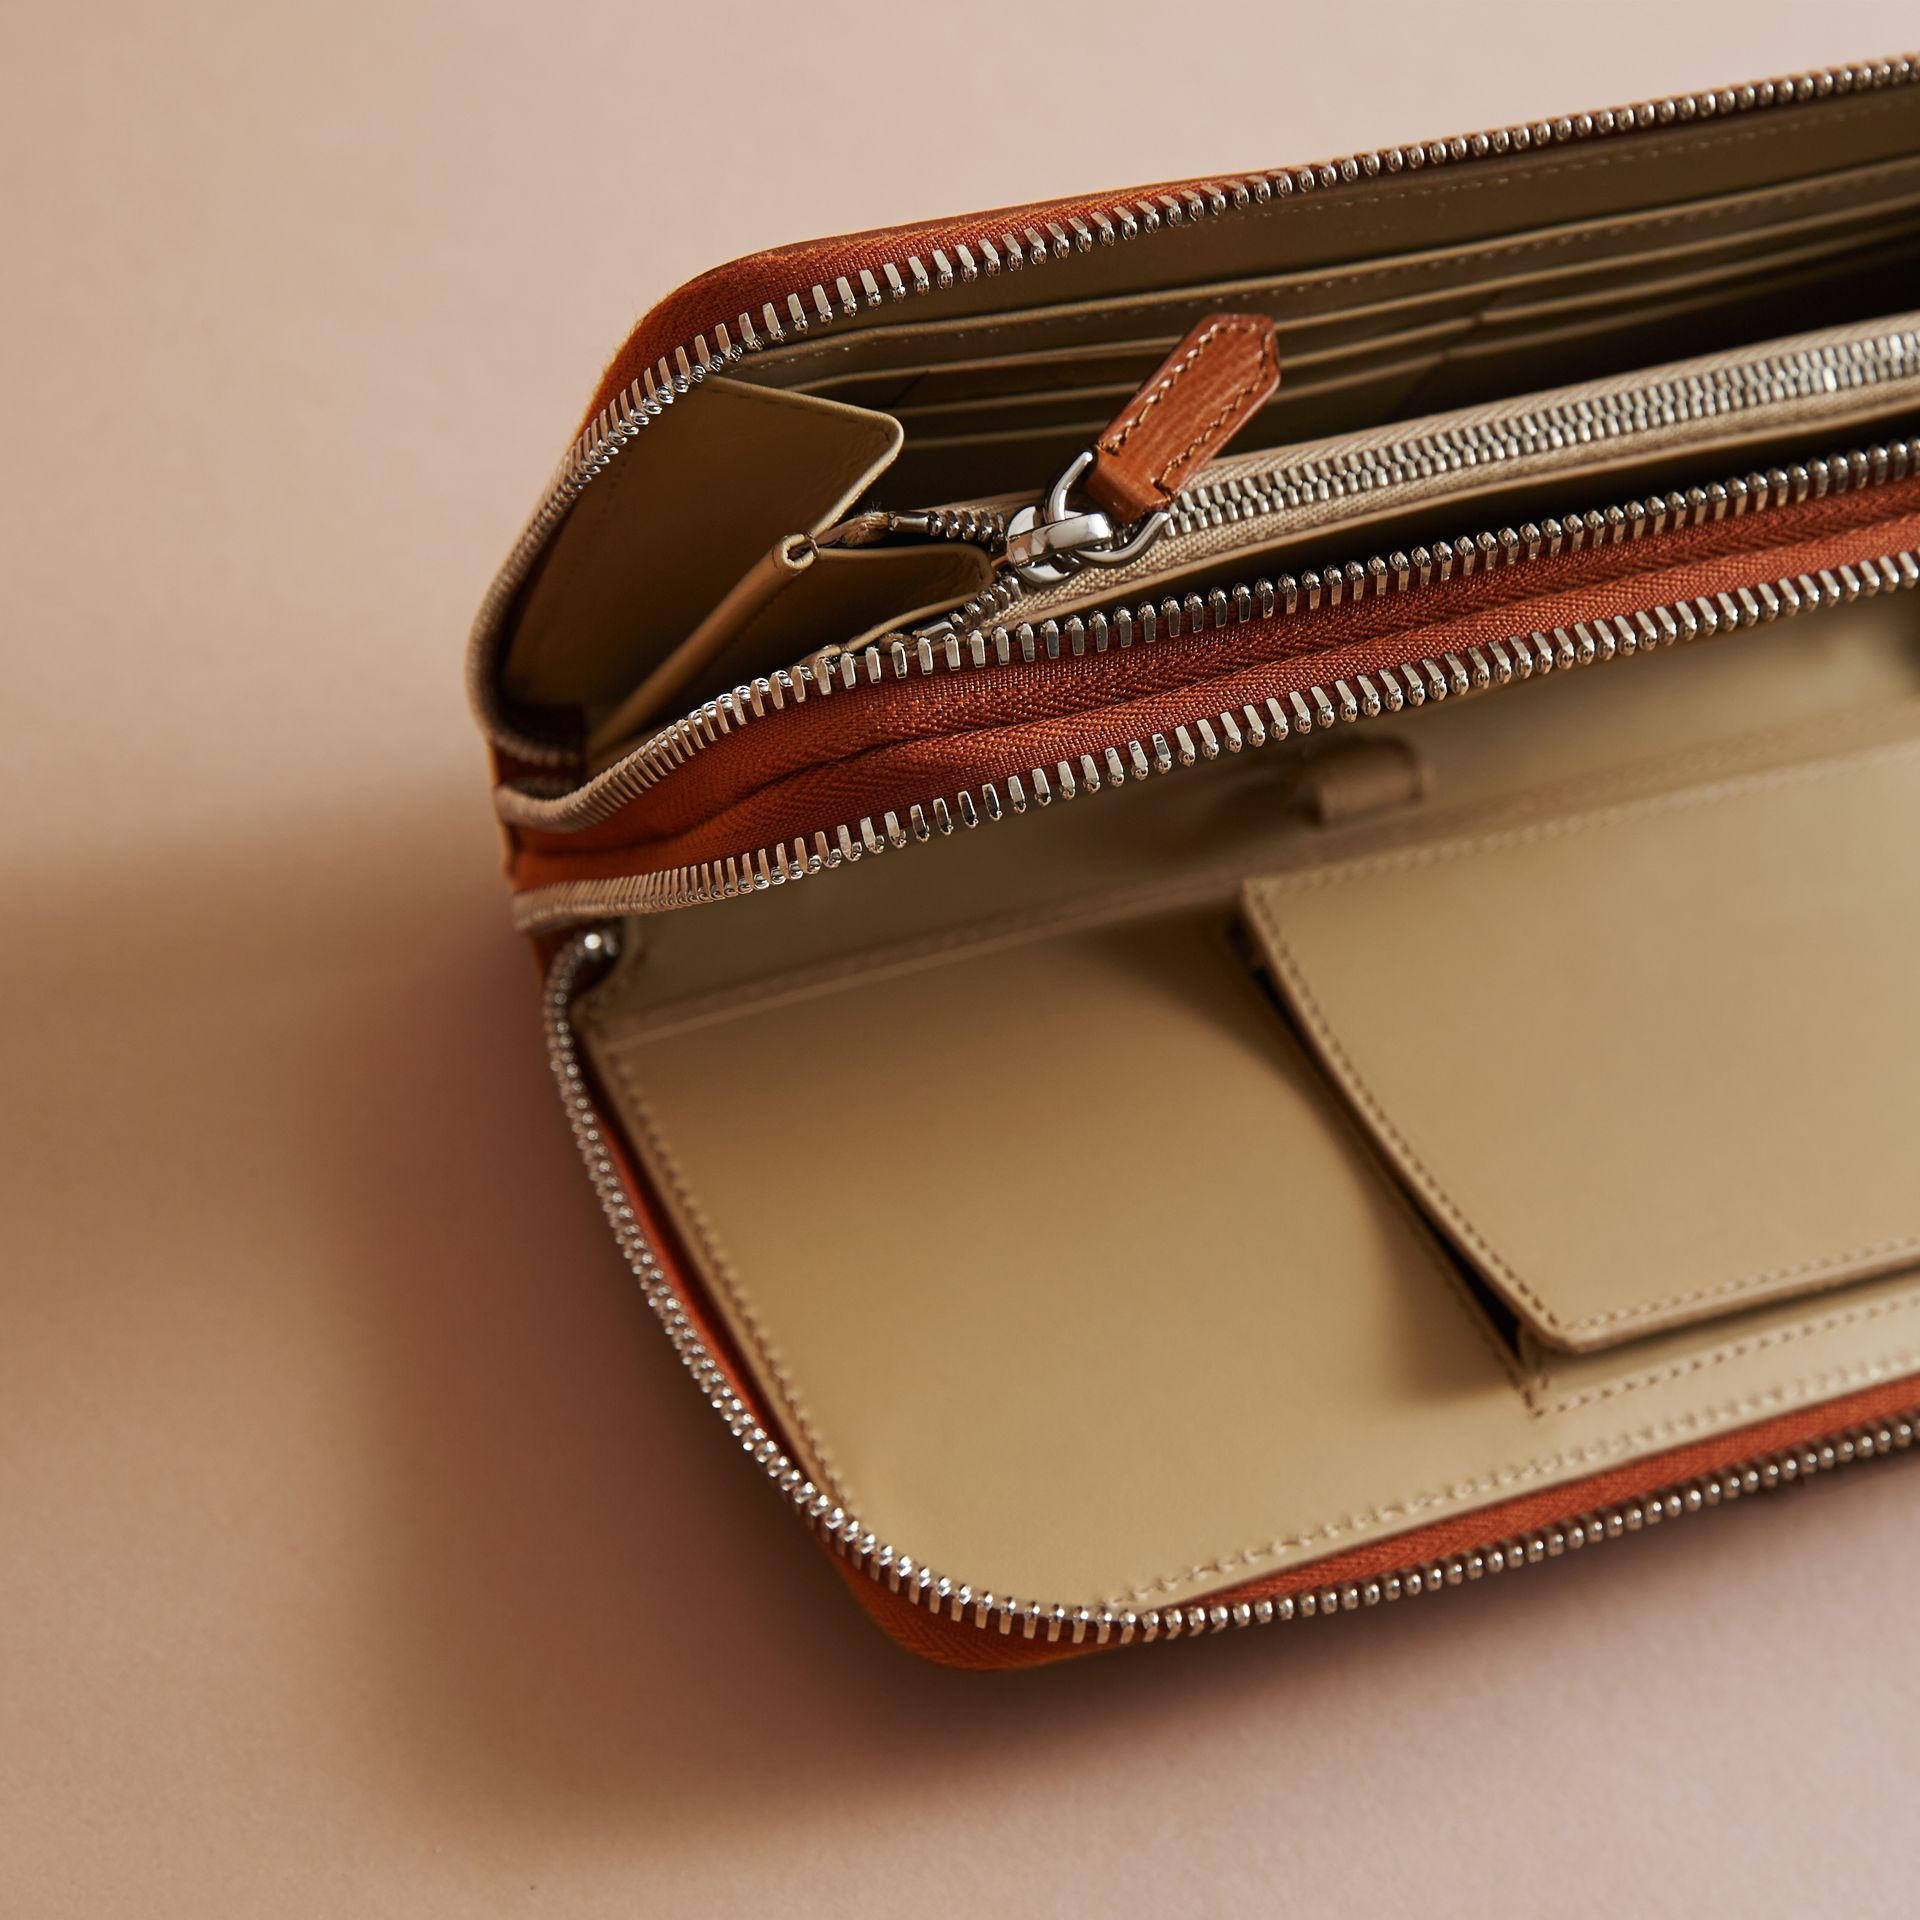 London Leather Travel Wallet in Tan - Men | Burberry Hong Kong - gallery image 5